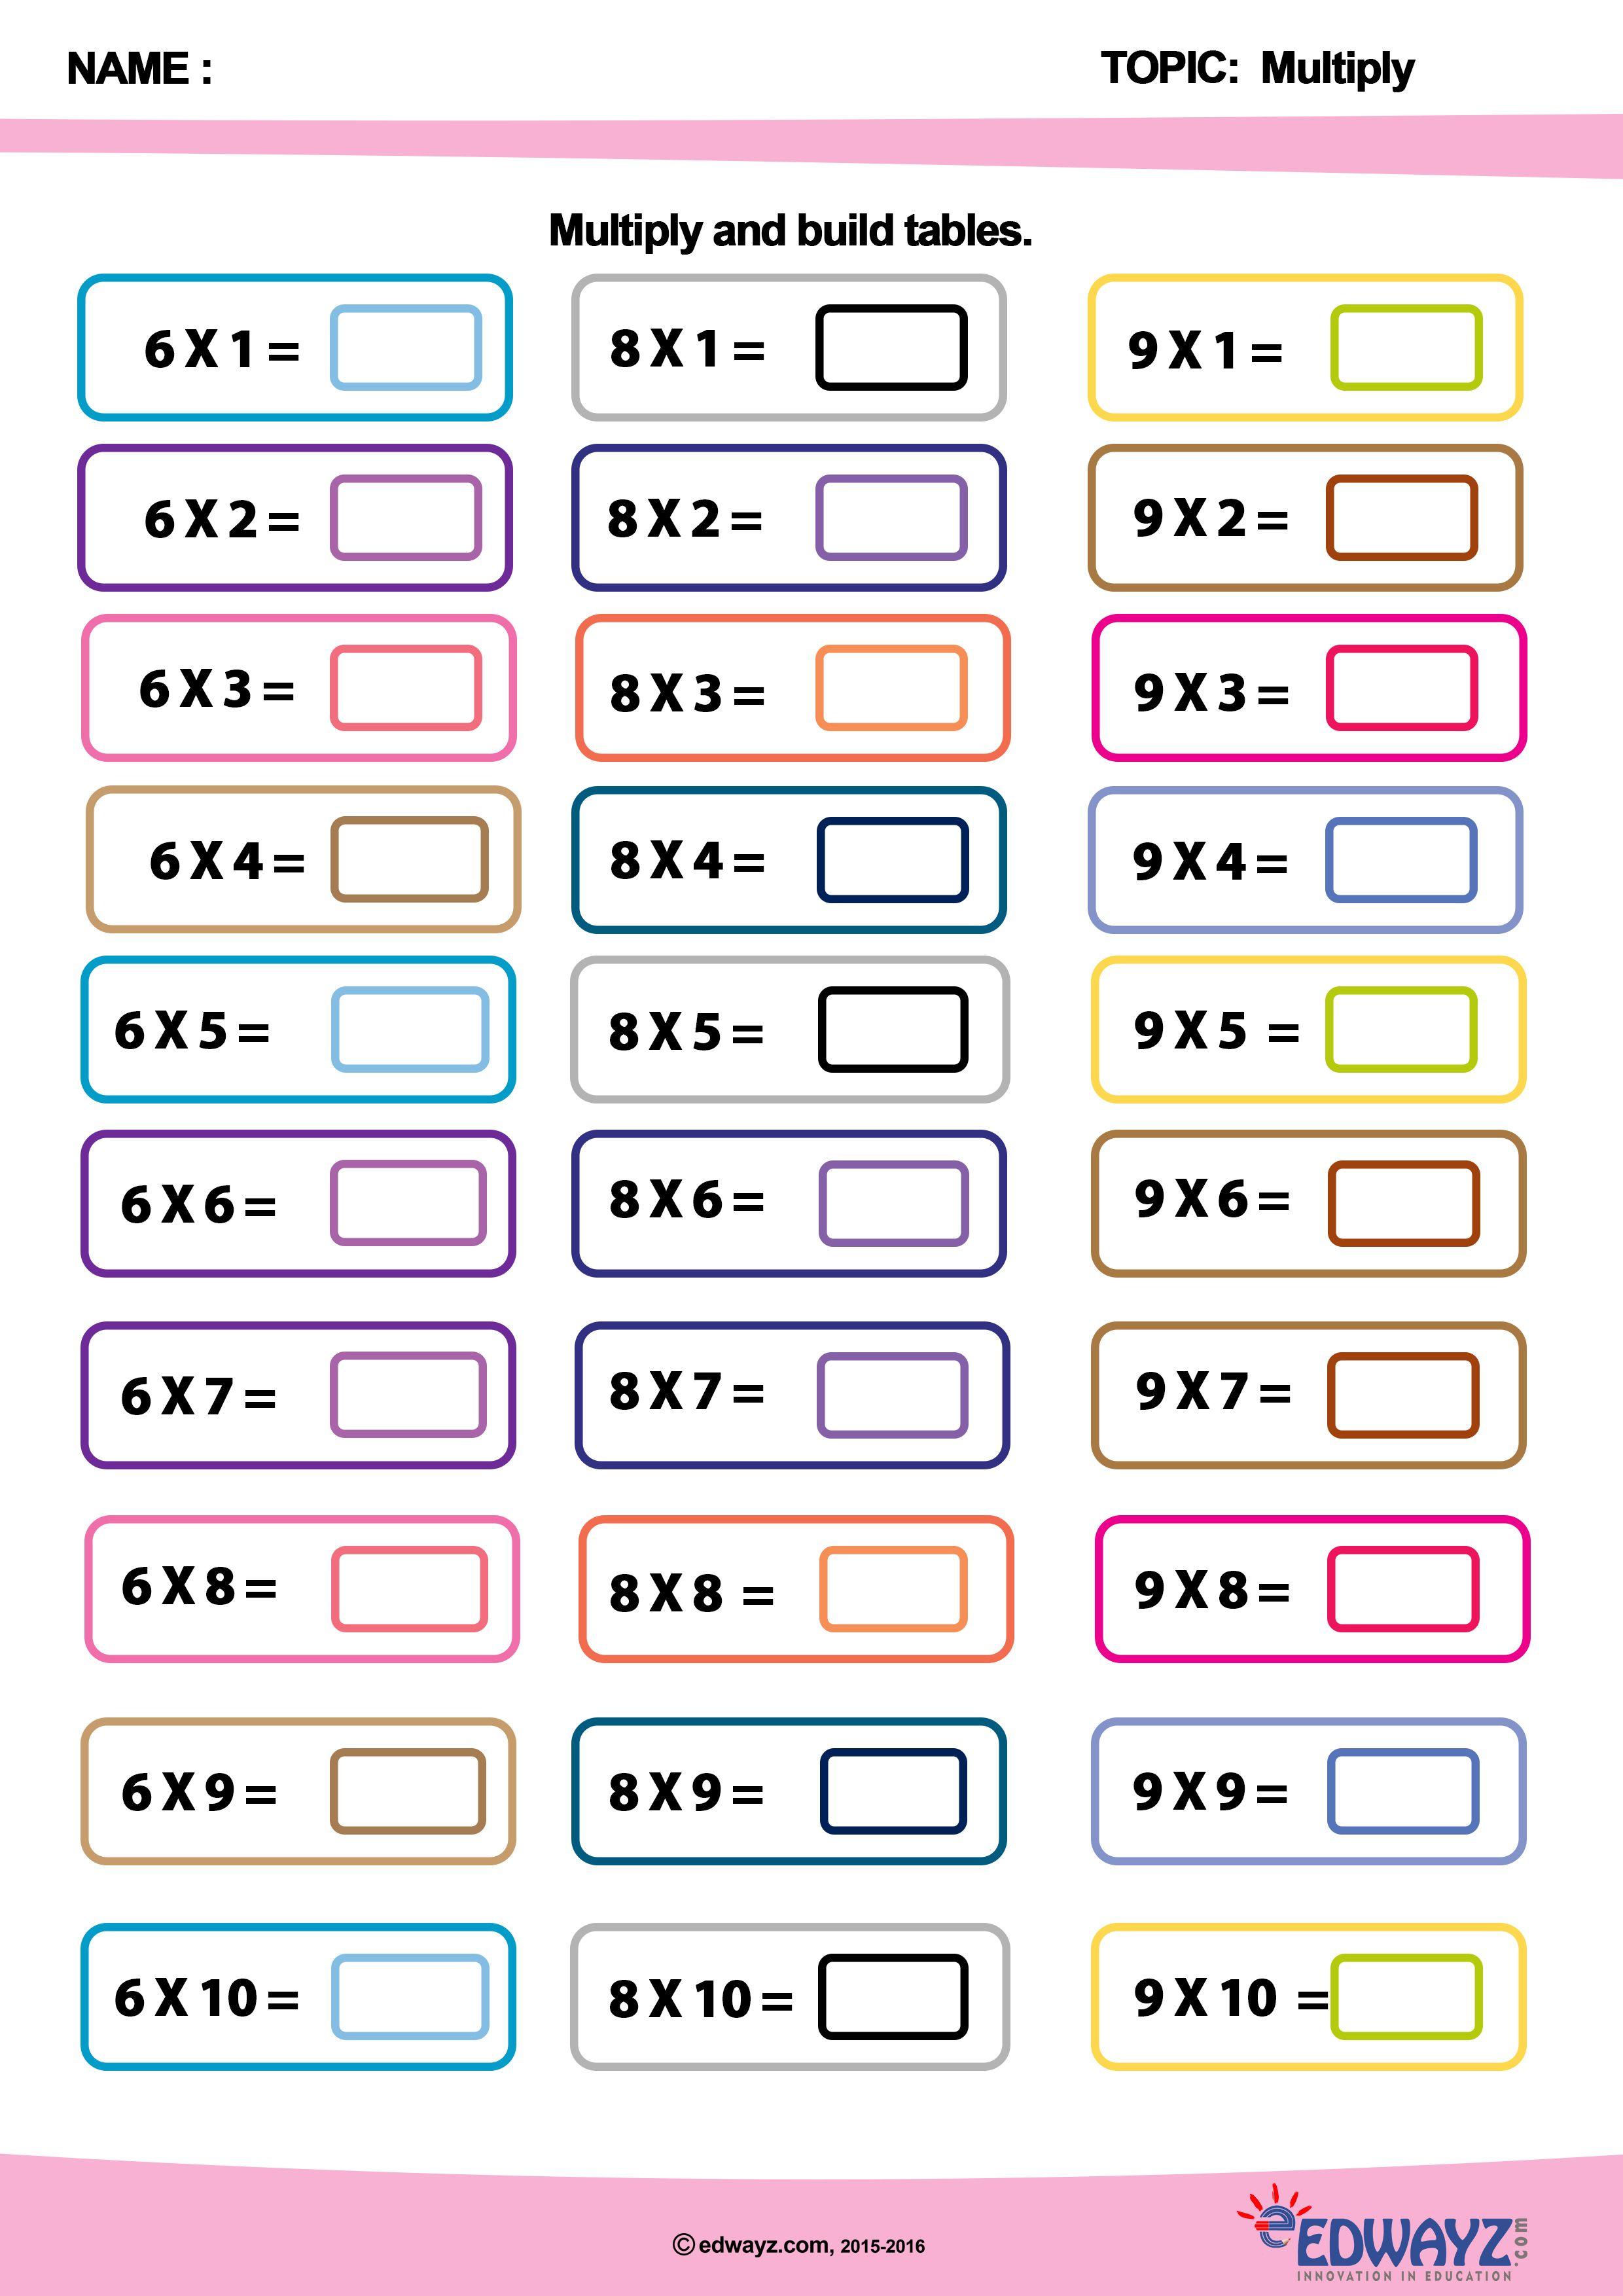 Worksheets Funlearning Math Class2 Multiplication Edwayz Edufun Edumath Fun Learning Math Worksheets